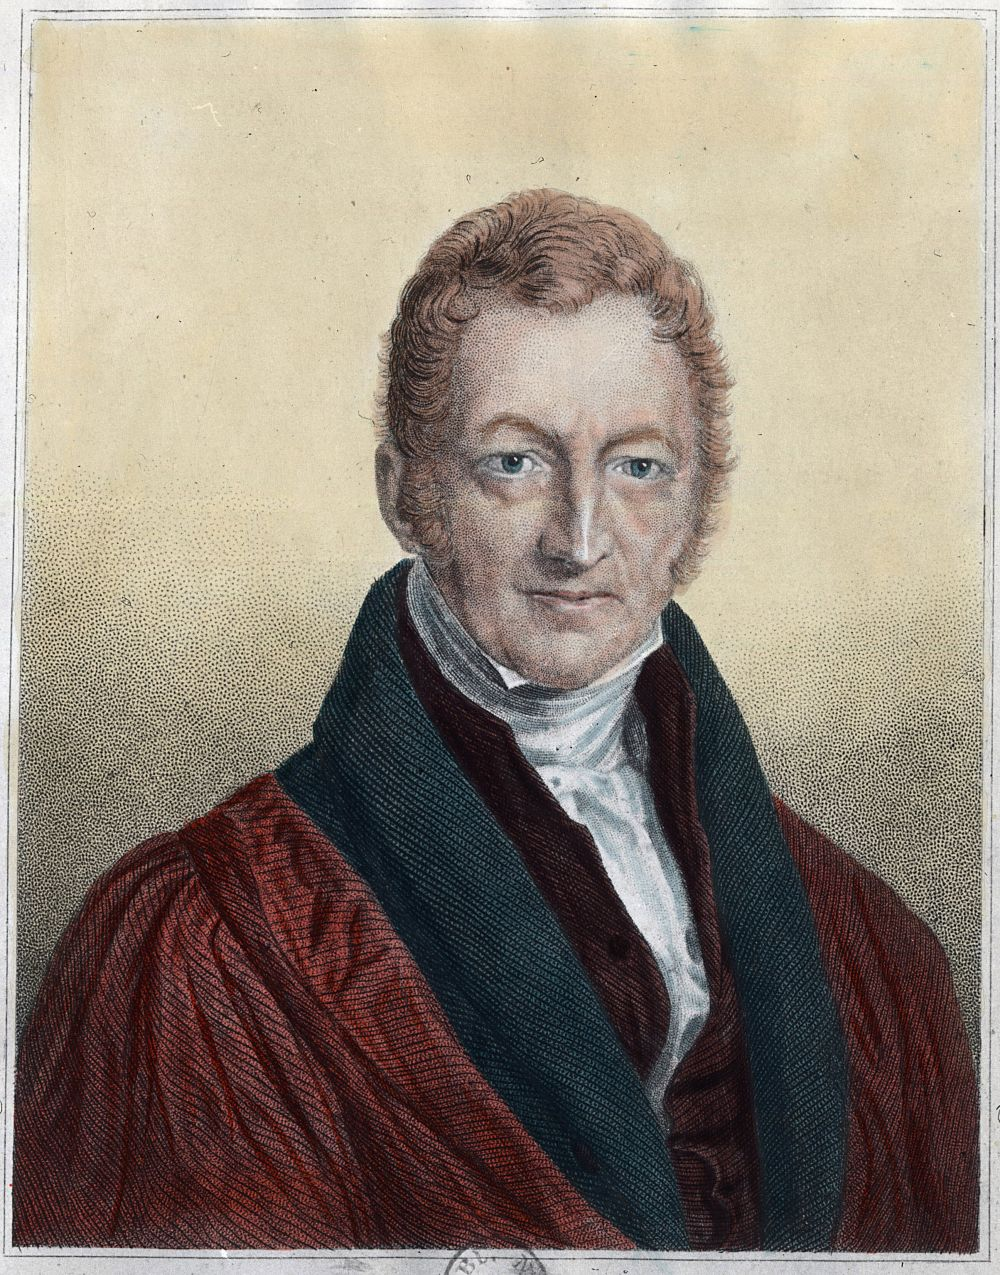 022 W1000 1798 1 Principe Population Thomas Malthus An Essay On The Principle Of Marvelous Summary Analysis Argued In His (1798) That Full